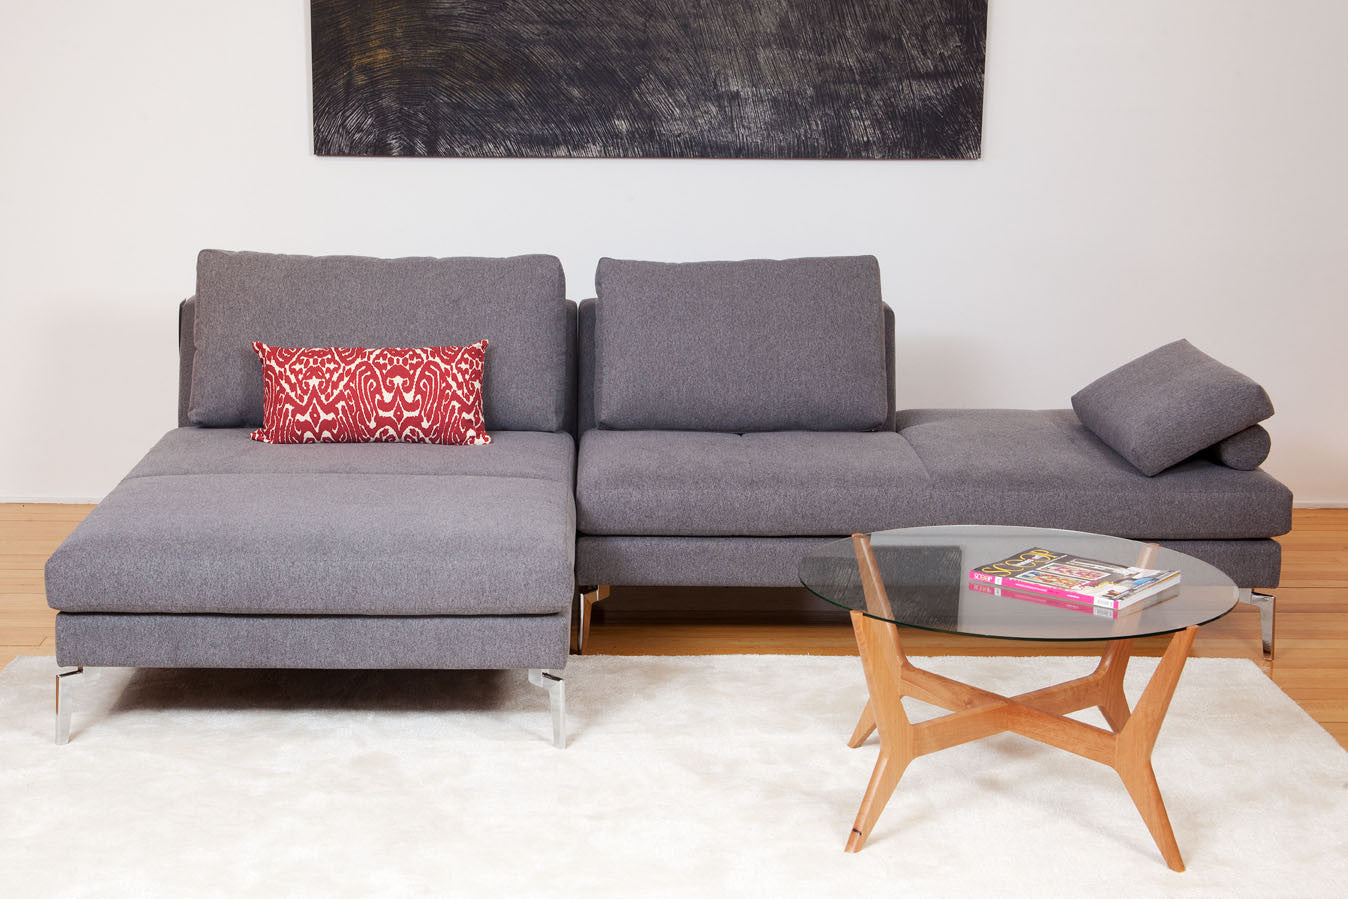 Brighton Chaise Modular Fabric or Leather Sofa Couch Bespoke